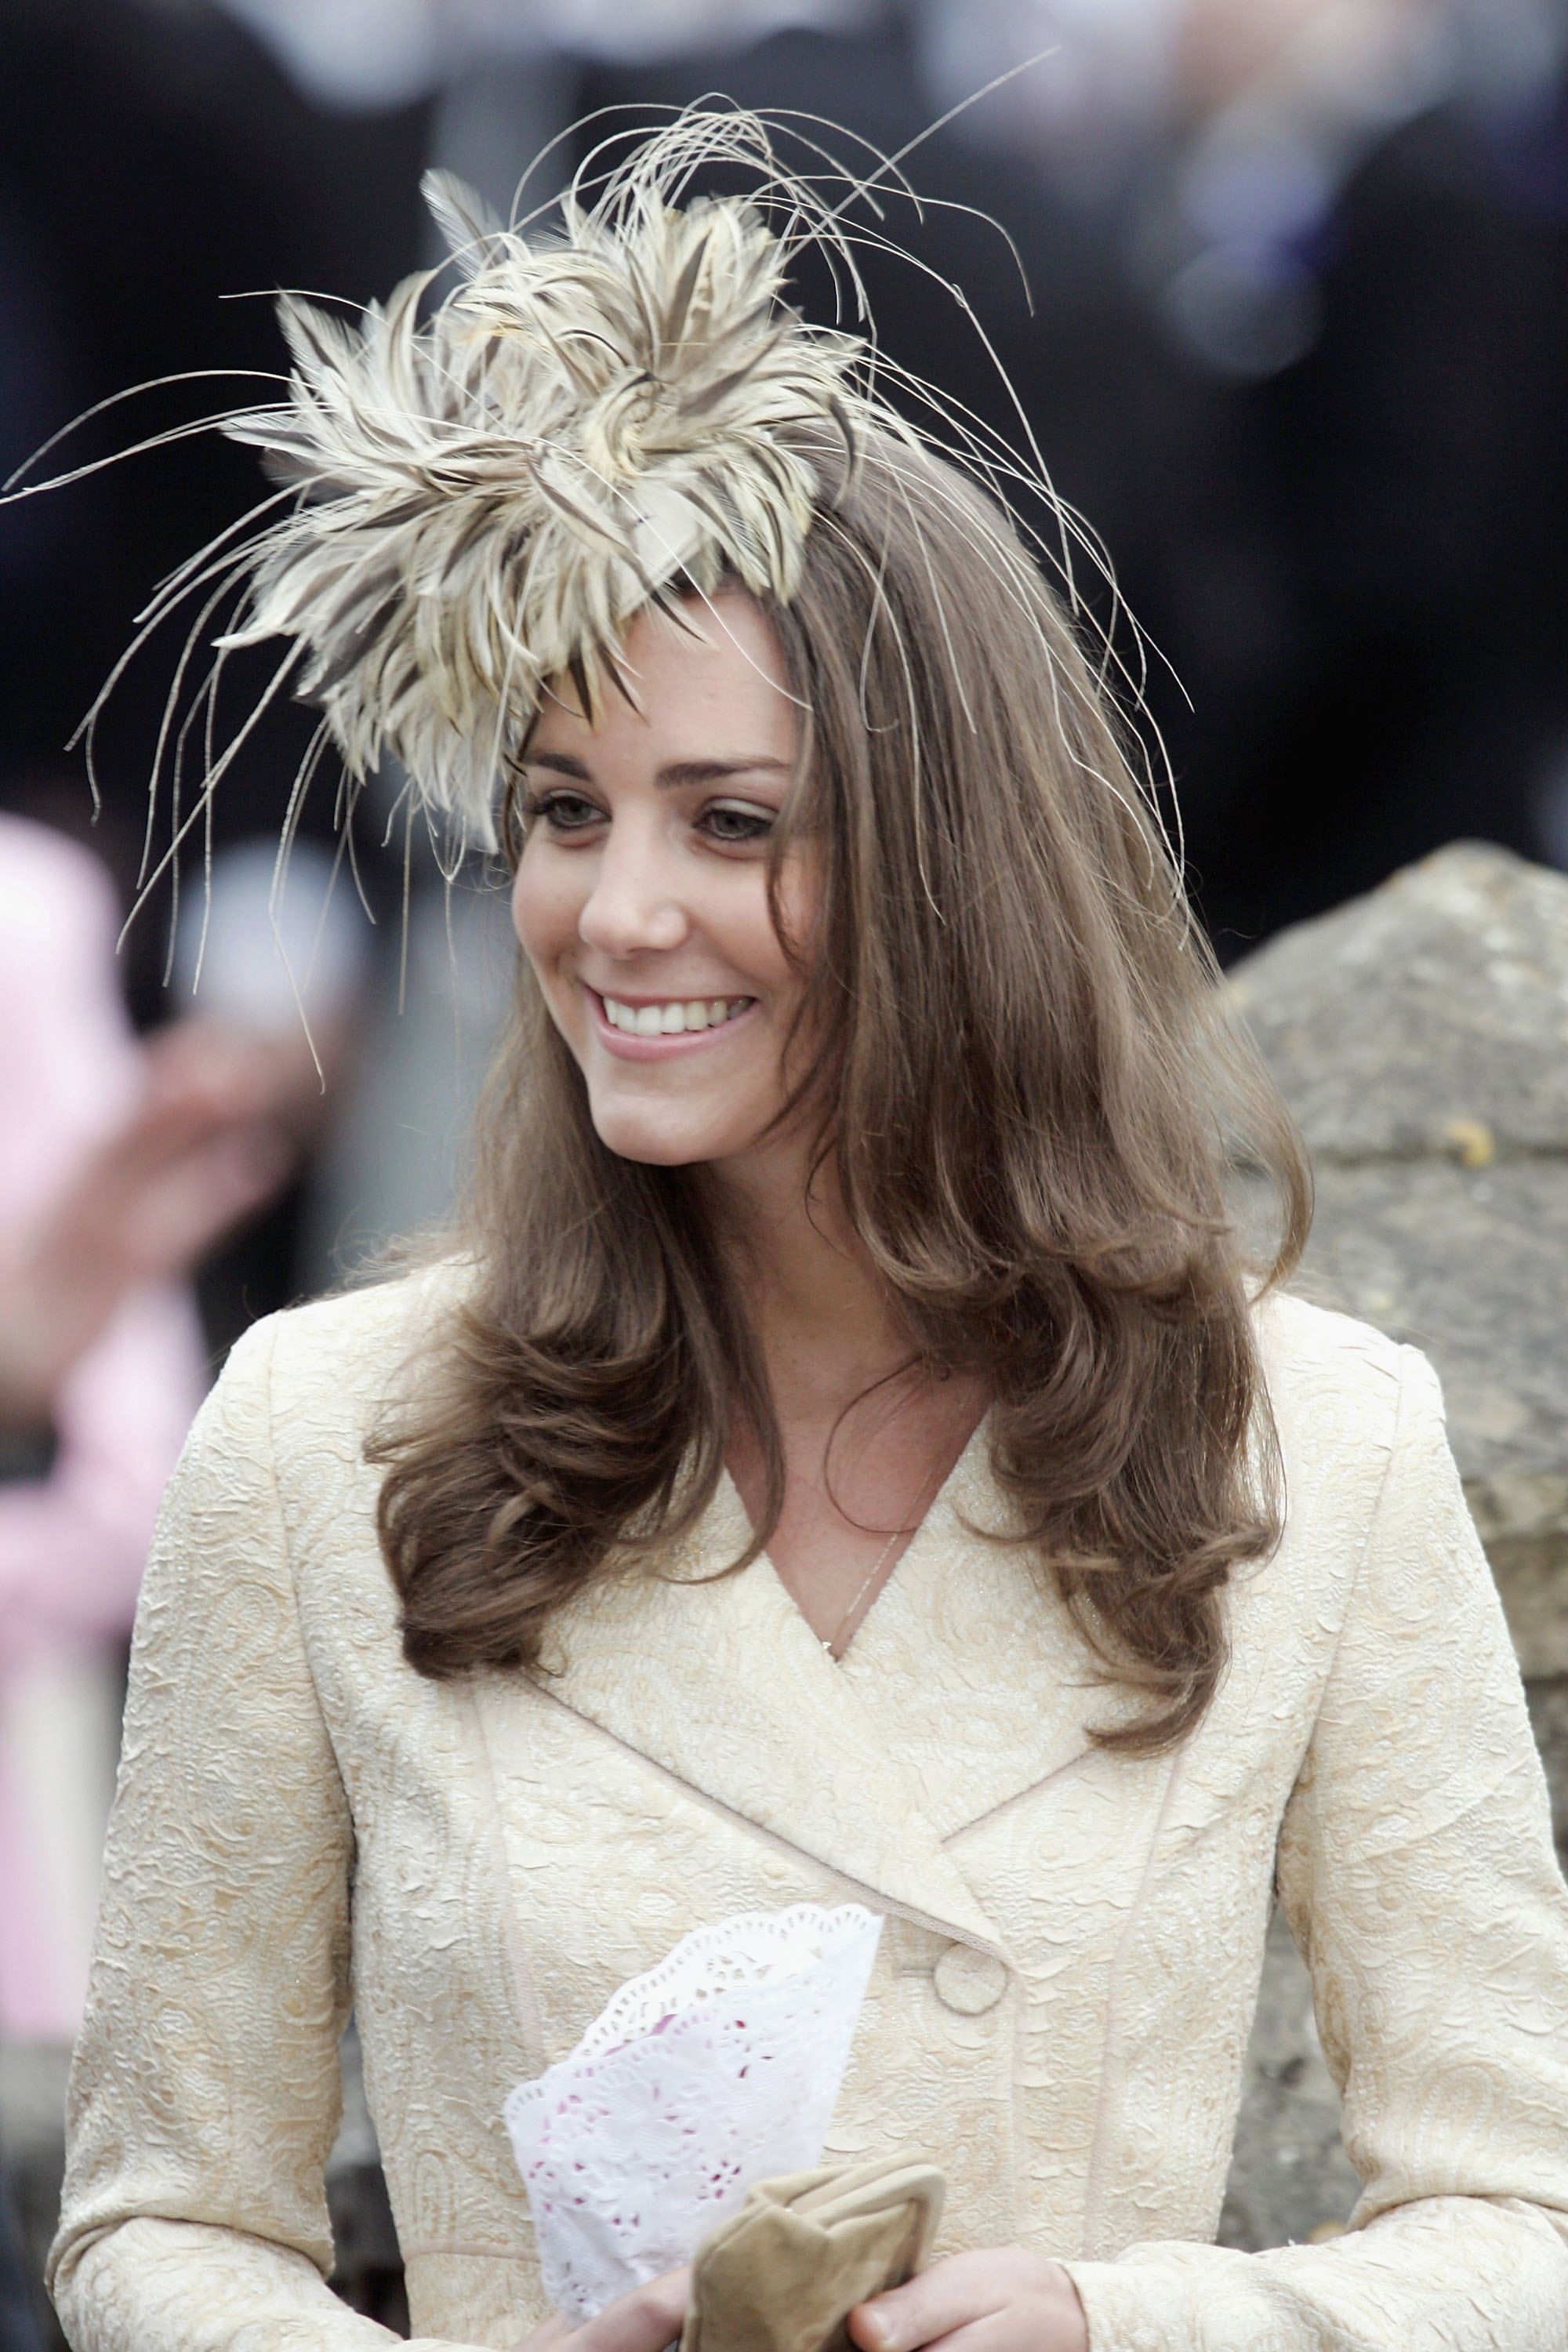 Kate Middleton attends the marriage of Laura Parker-Bowles and Harry Lopes at St Cyriac's Church, Lacock, on May 6, 2006 in Wiltshire, England. | Source: Getty Images